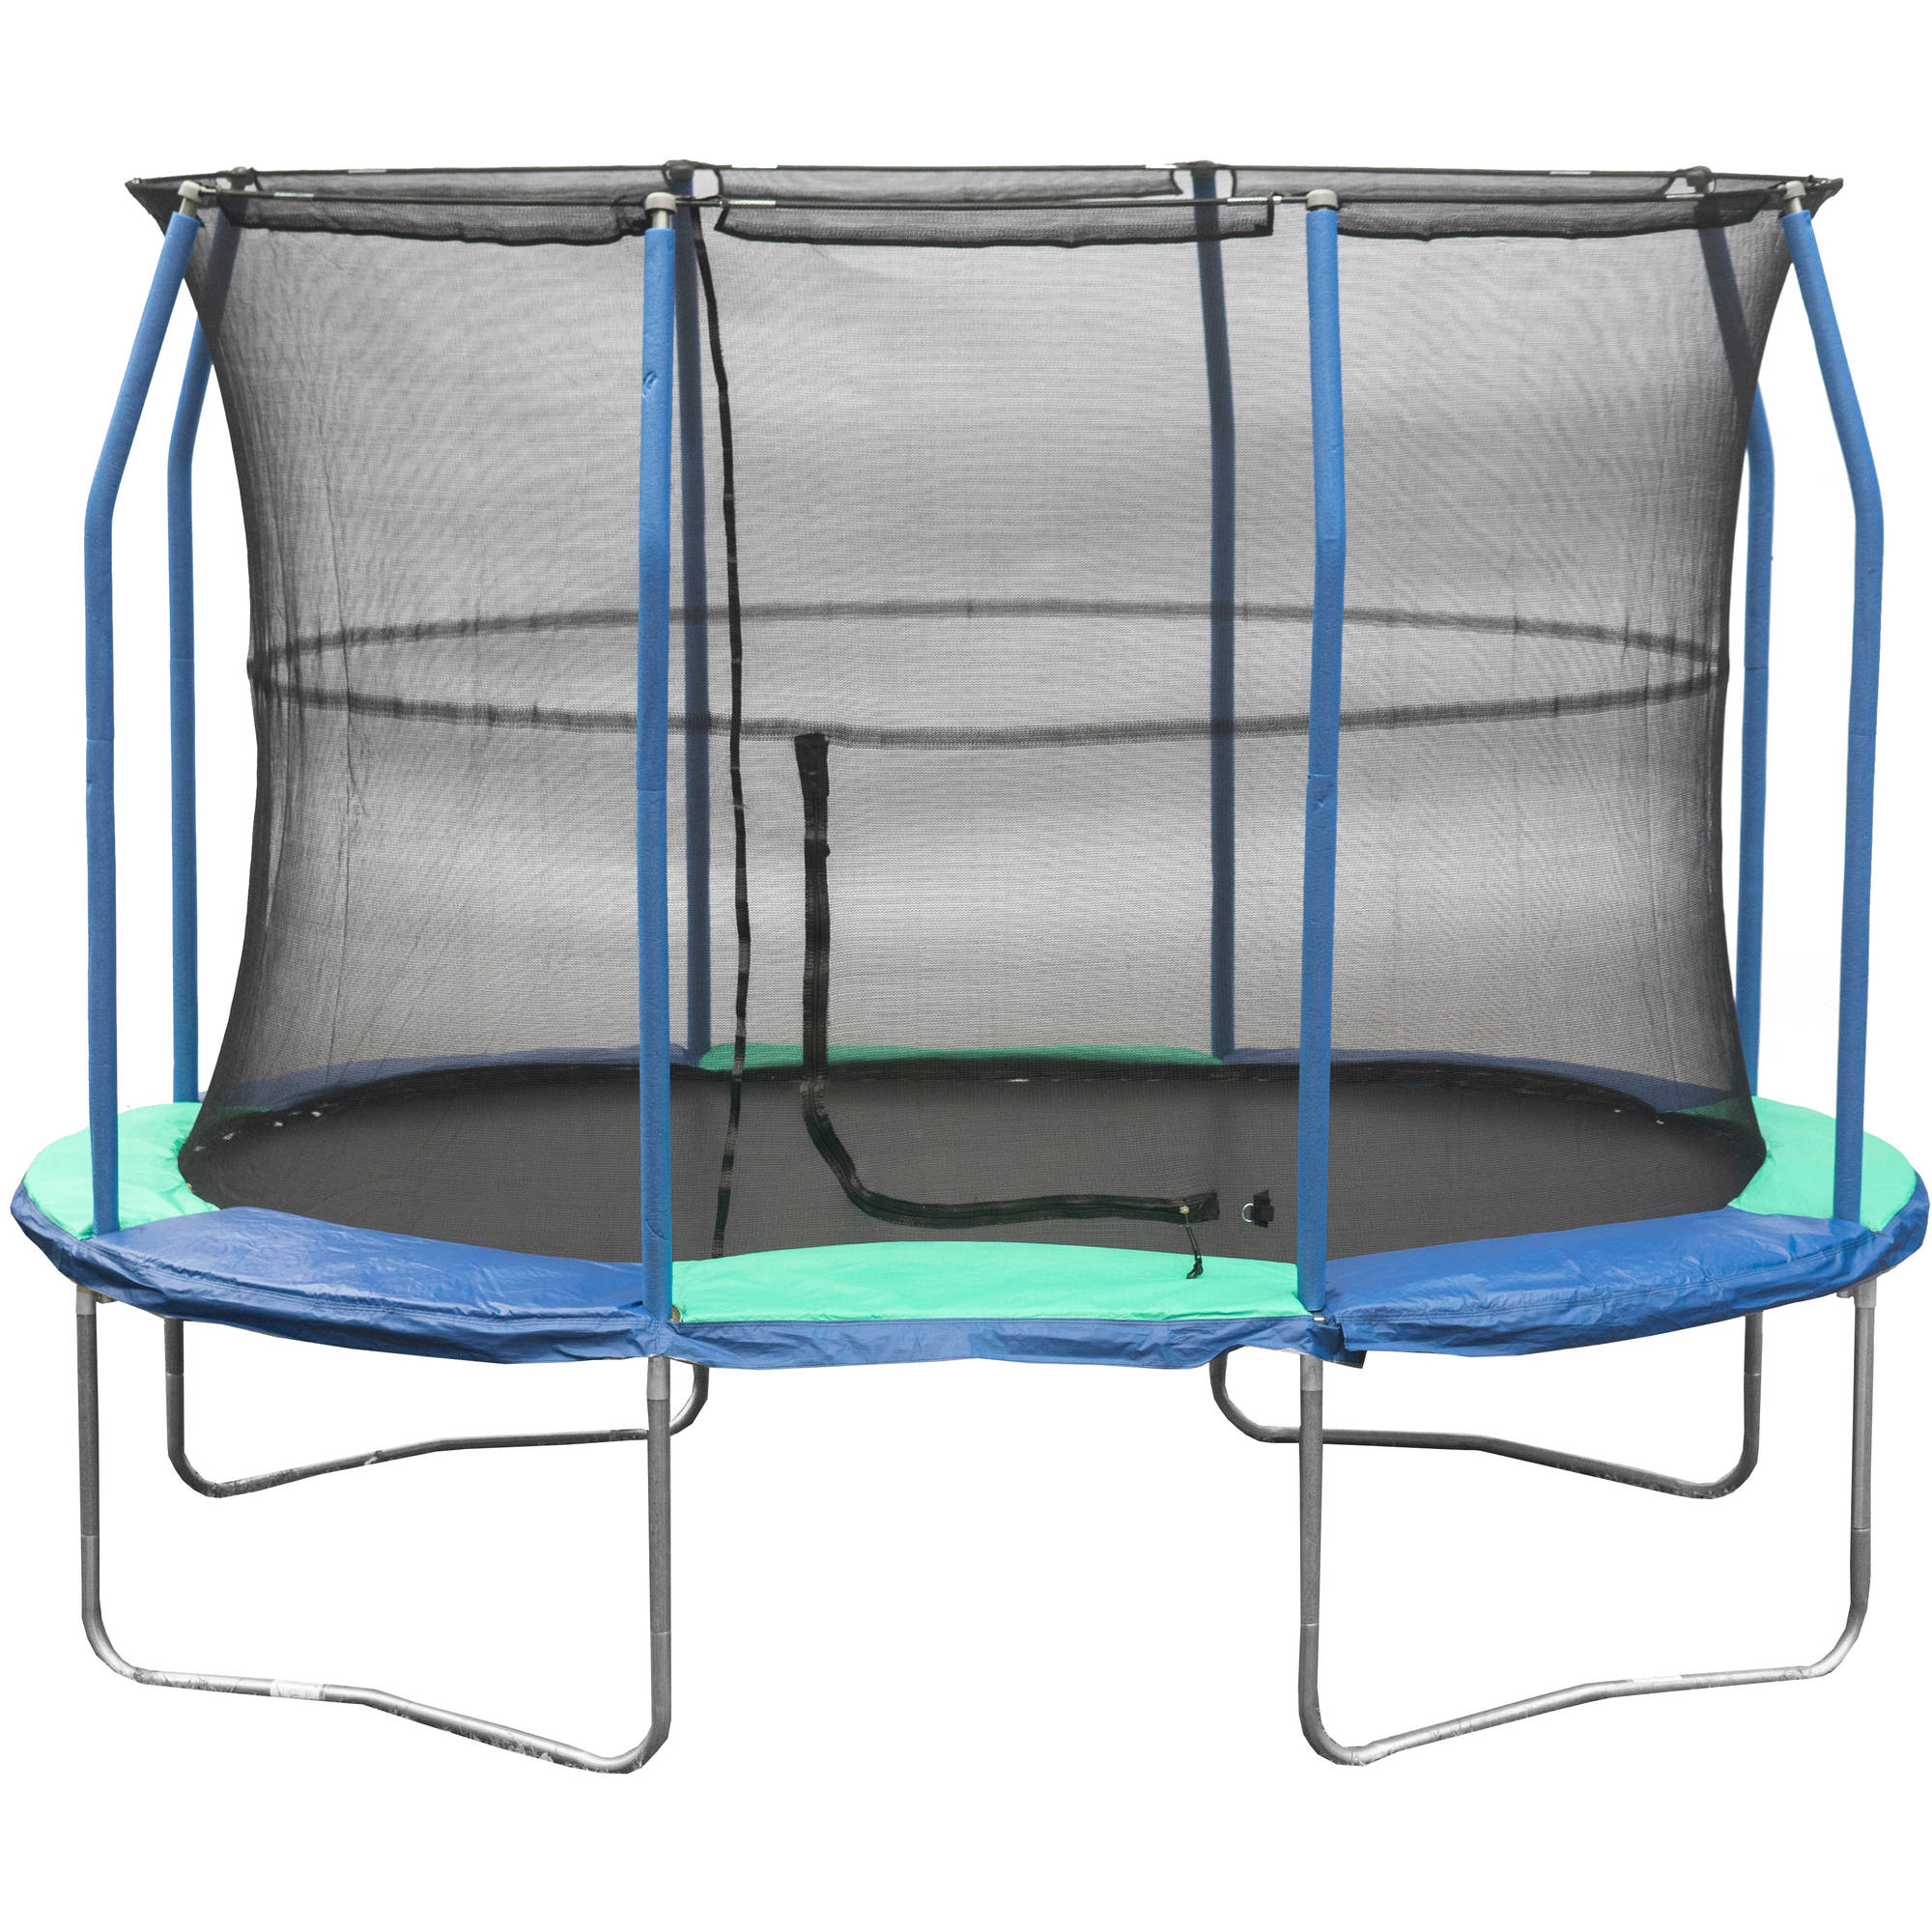 Jumpking Oval 8 x 11.5 Foot Trampoline, with Enclosure, Blue Green by Jump King